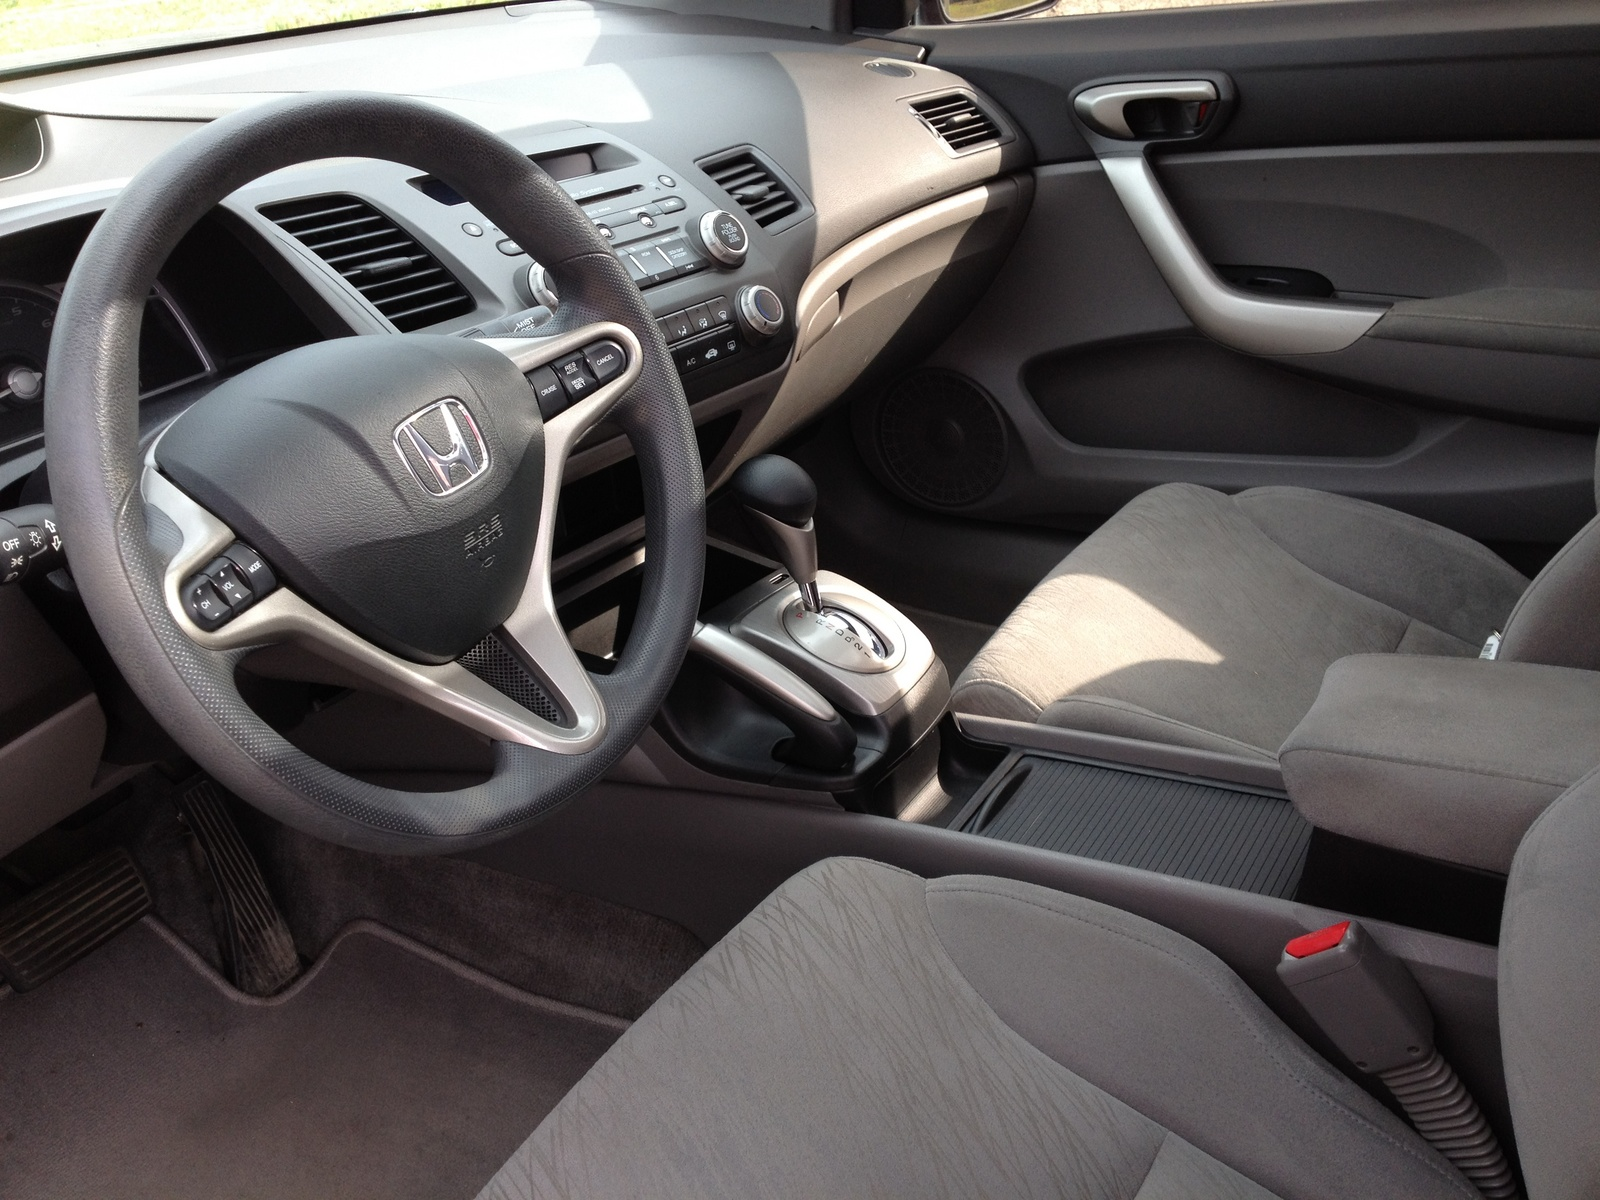 Honda Civic 2006 Coupe Interior - save our oceans